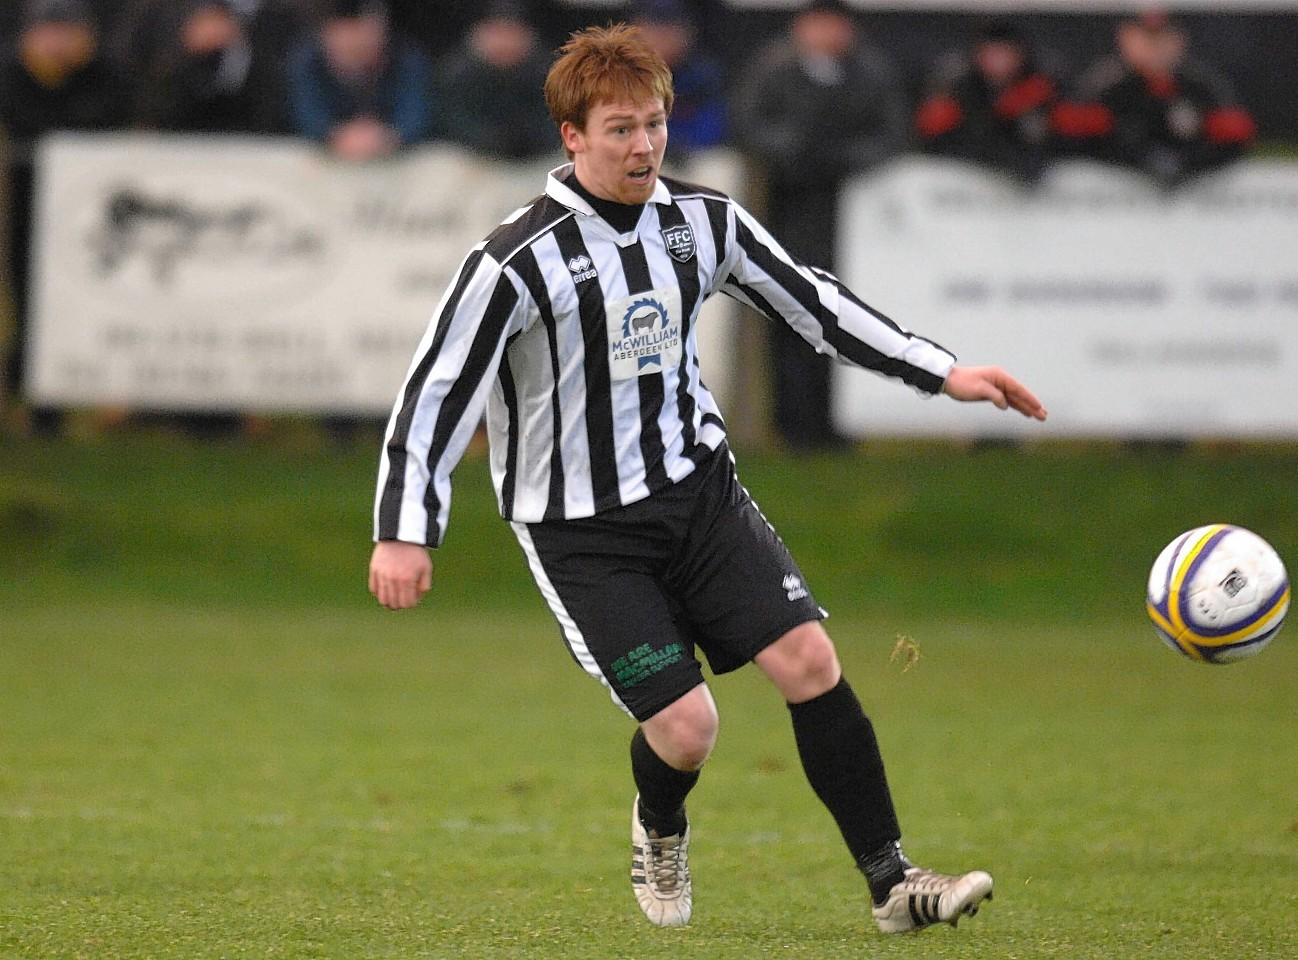 Fraserburgh player Graham Johnston